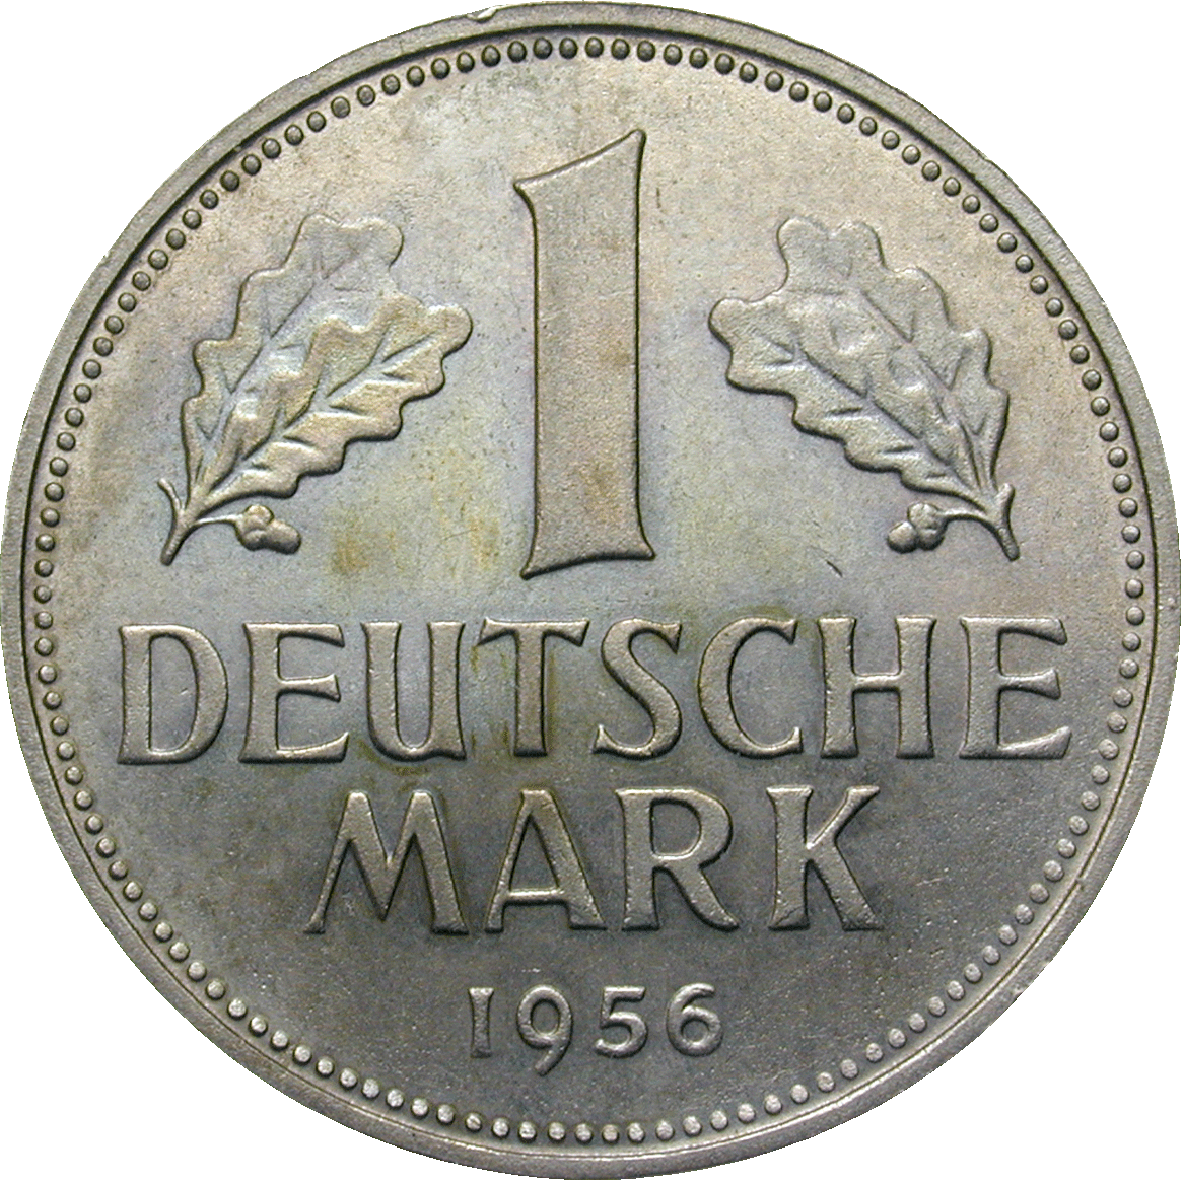 Federal Republic of Germany, 1 Deutsche Mark 1956 (reverse)